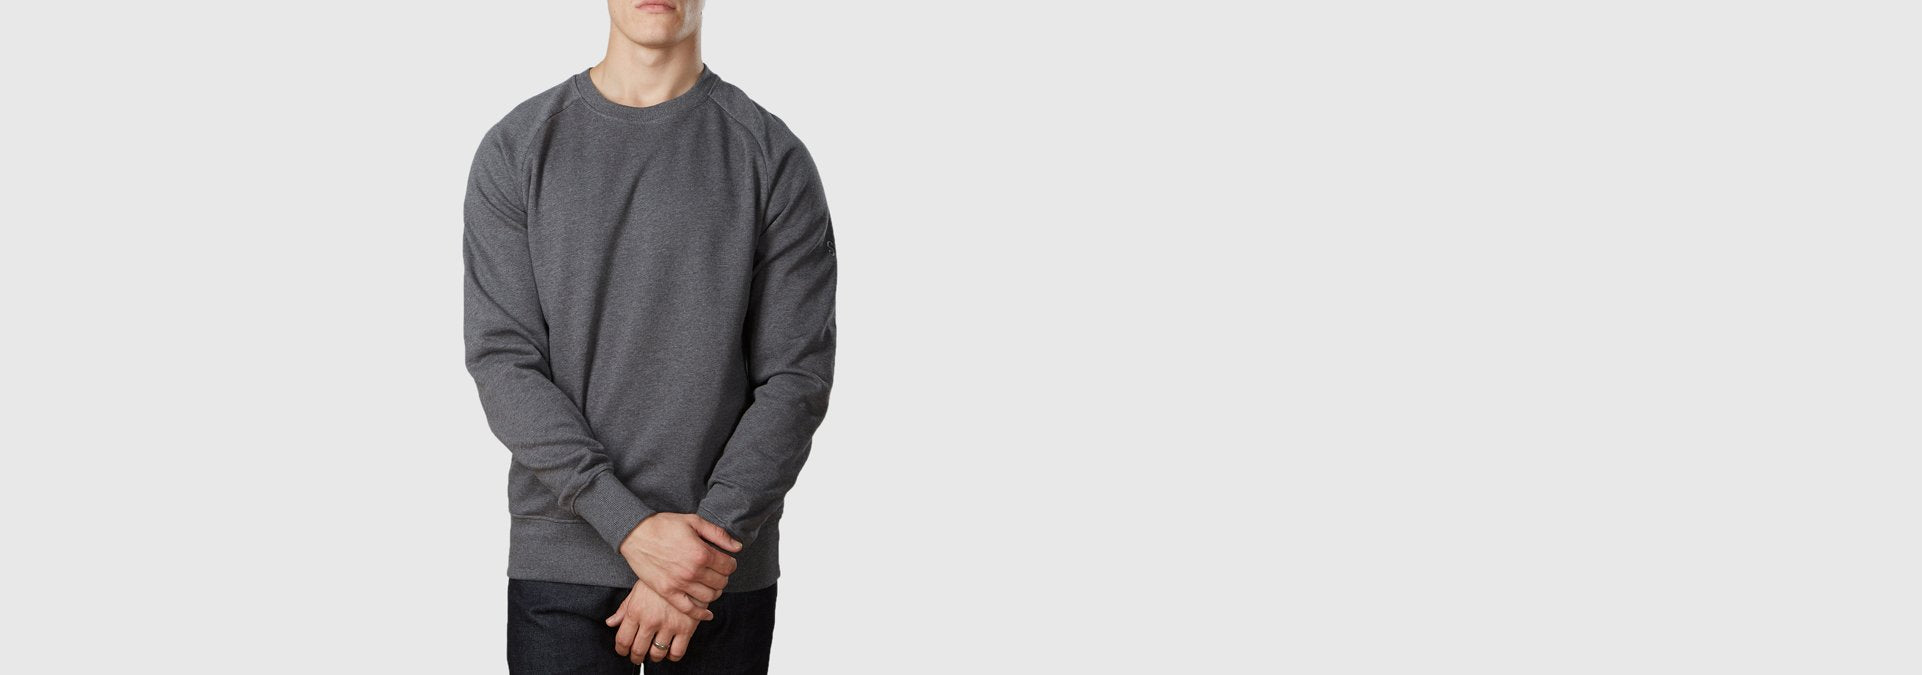 Core Organic Cotton Sweatshirt Dark Heather